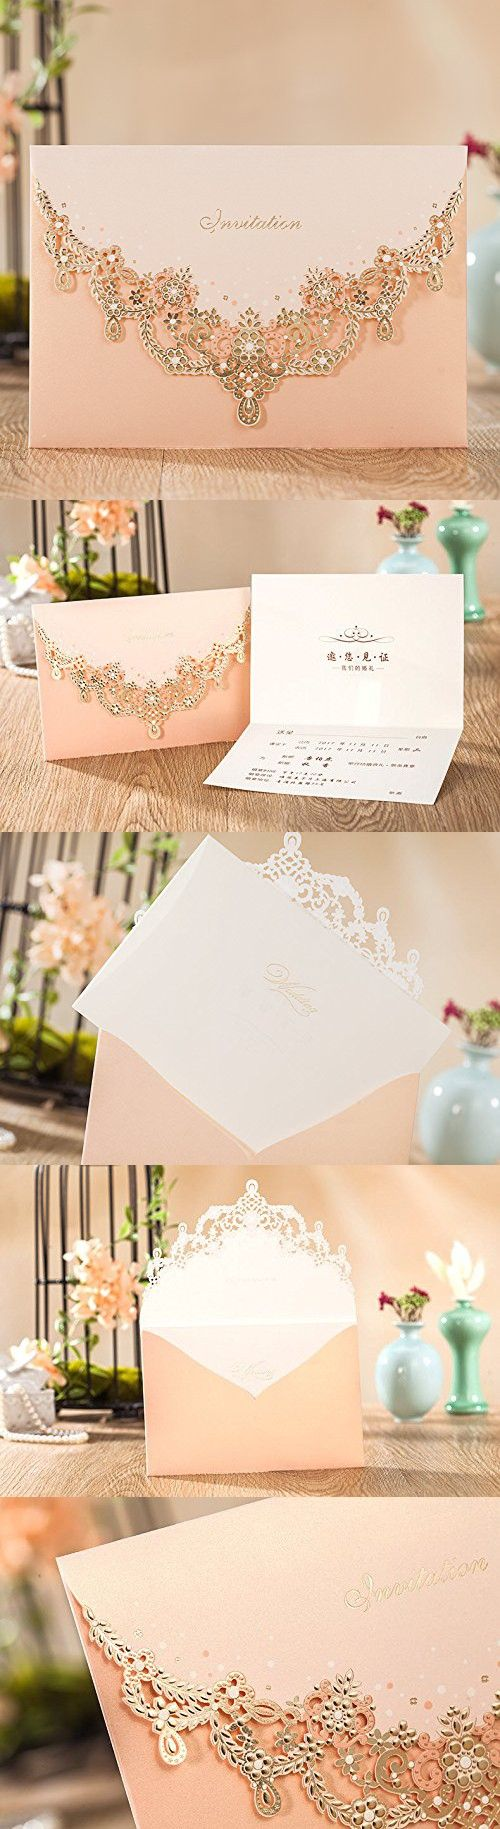 wedding invitation photo%0A Wishmade Wedding Invitations Cards  Light Pink     Pieces  CW       Customized Printing